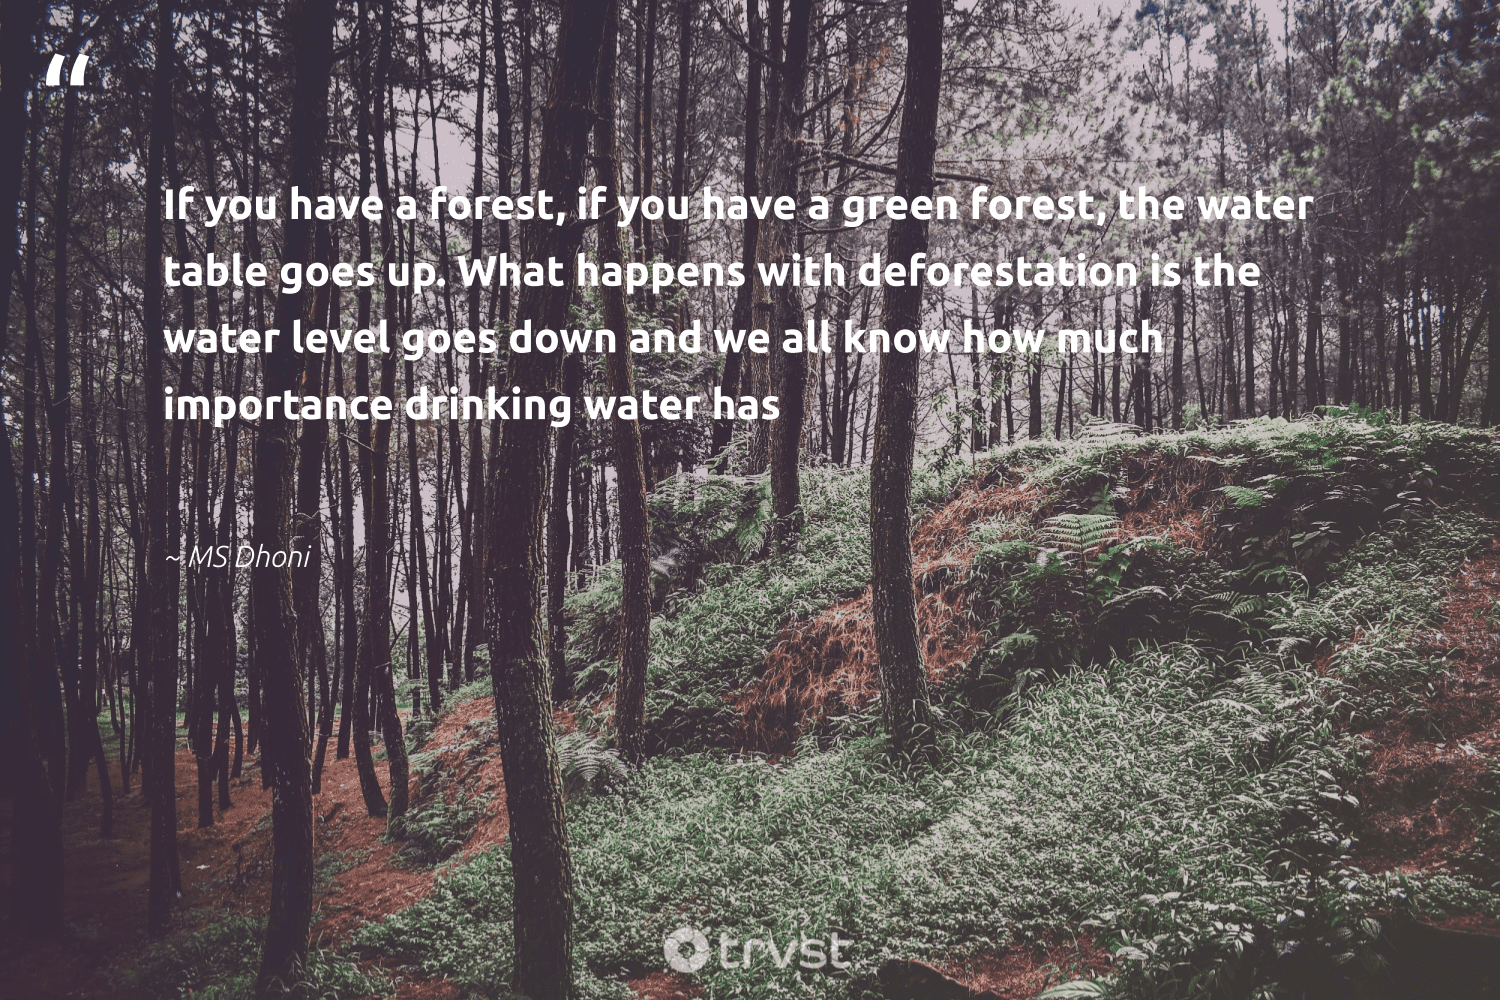 """If you have a forest, if you have a green forest, the water table goes up. What happens with deforestation is the water level goes down and we all know how much importance drinking water has""  - MS Dhoni #trvst #quotes"